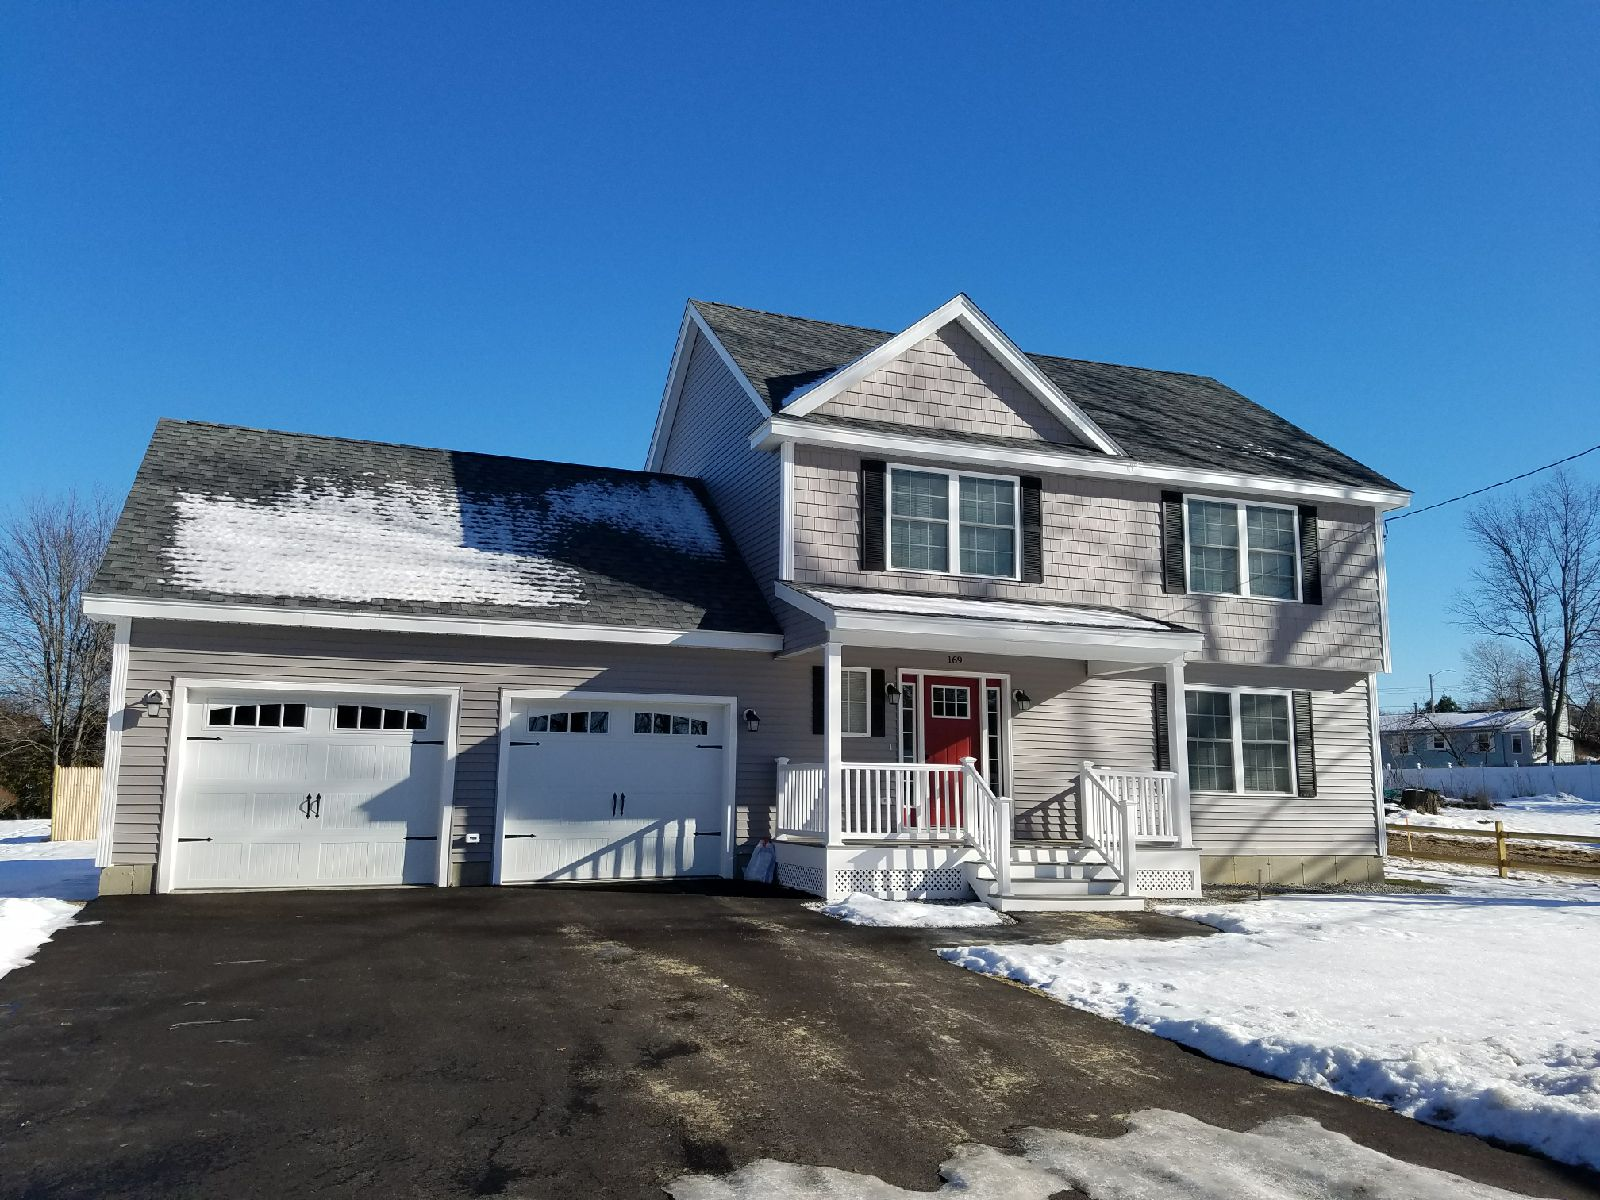 Roofing install in Manchester NH by ASAP Roofing NH